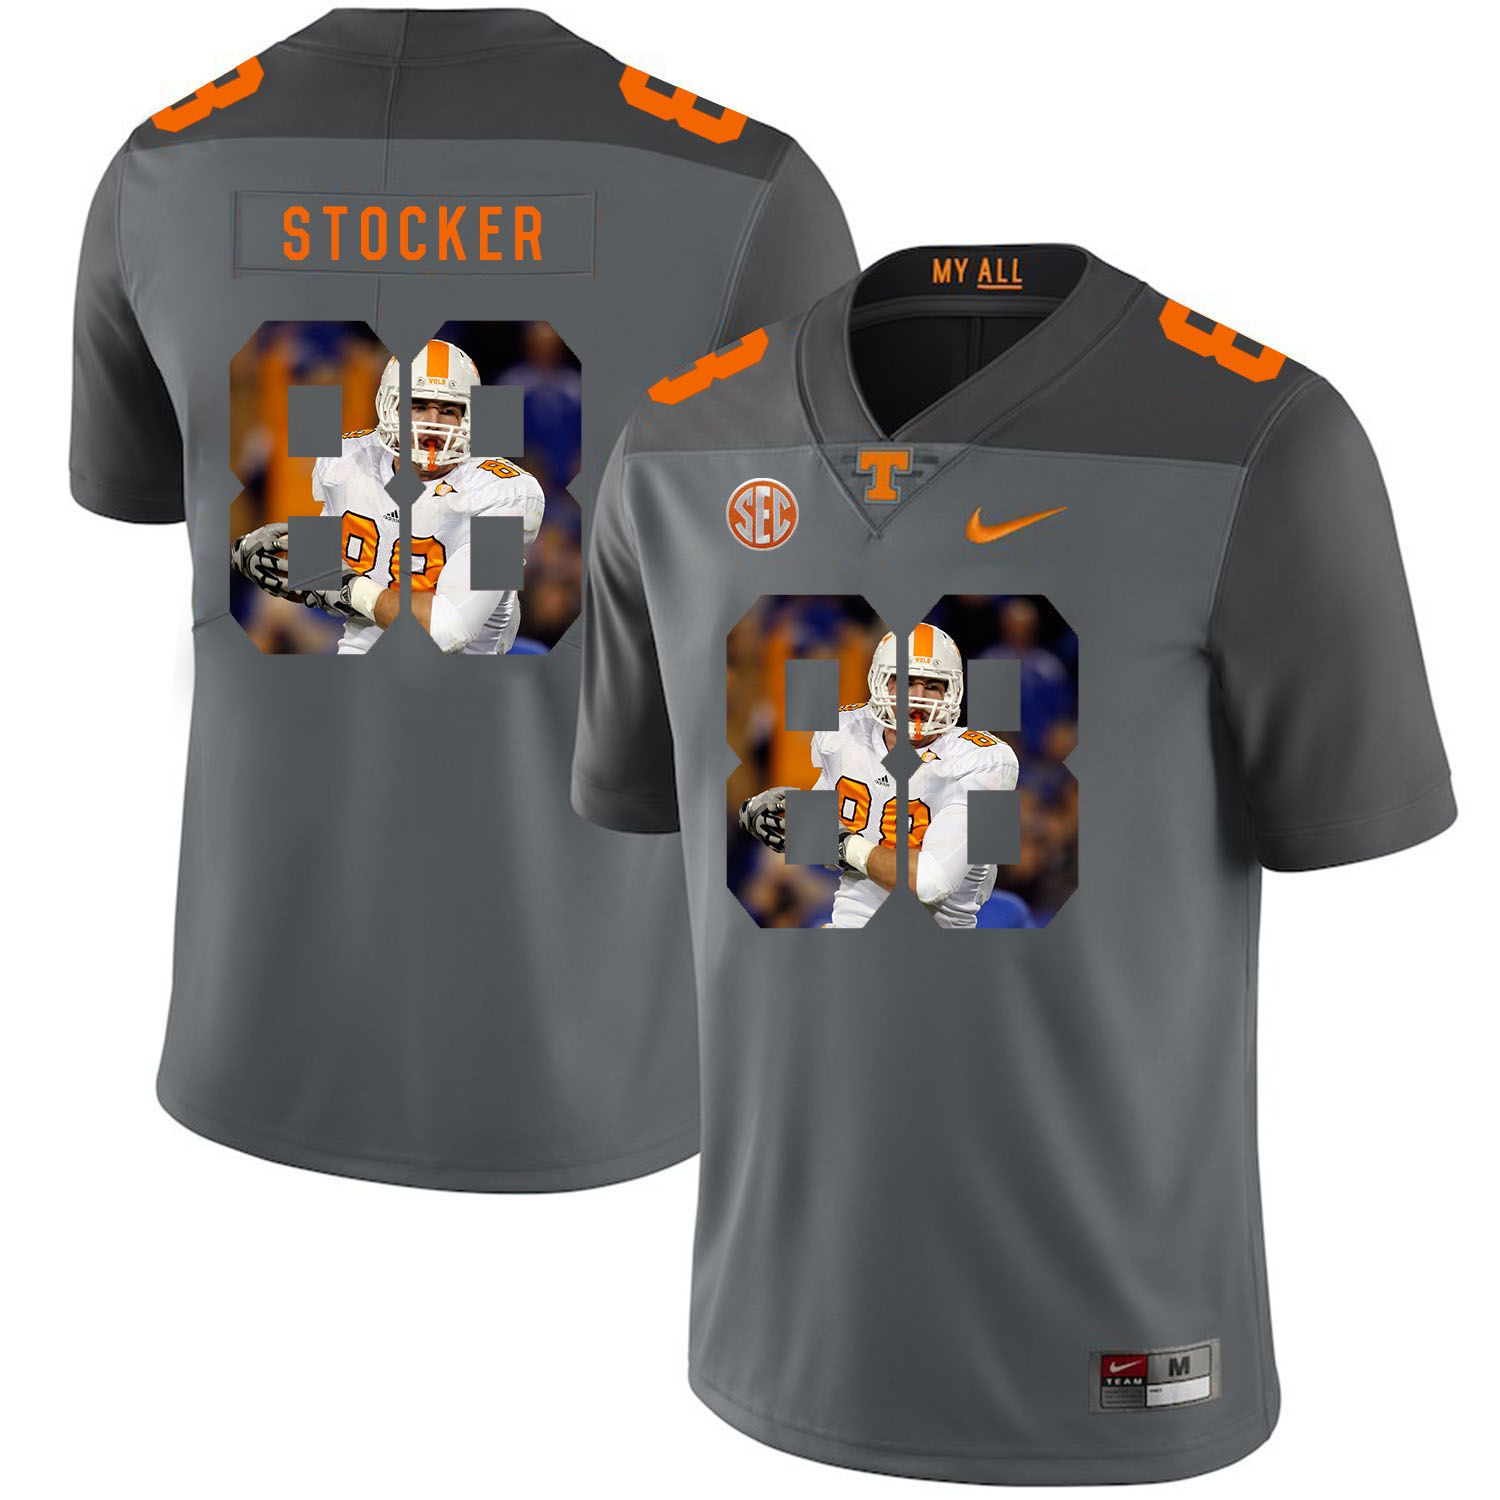 Men Tennessee Volunteers 88 Stocker Grey Fashion Edition Customized NCAA Jerseys